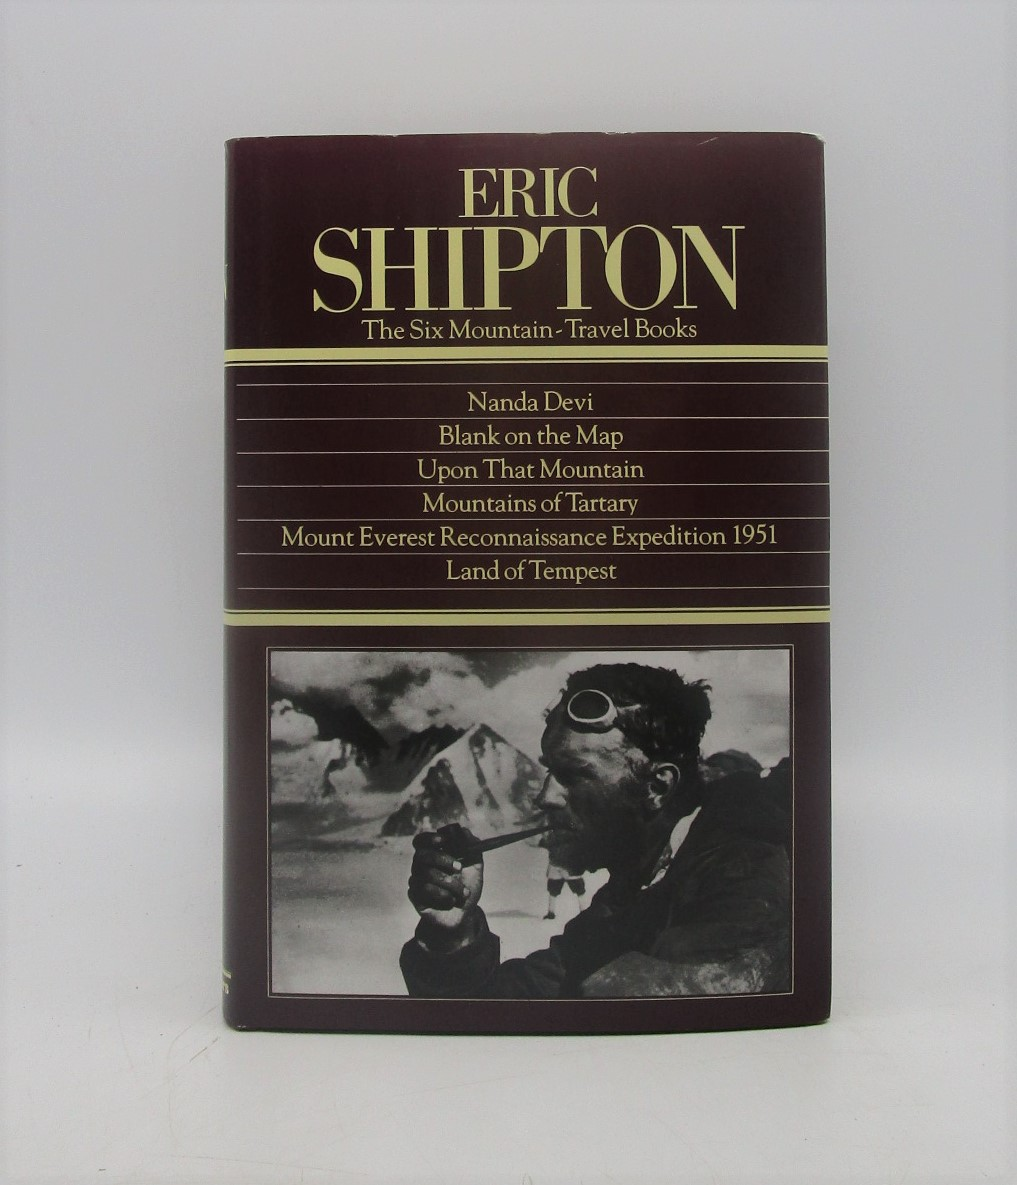 Image for Eric Shipton : The Six Mountain-Travel Books (Six Books in One Volume)